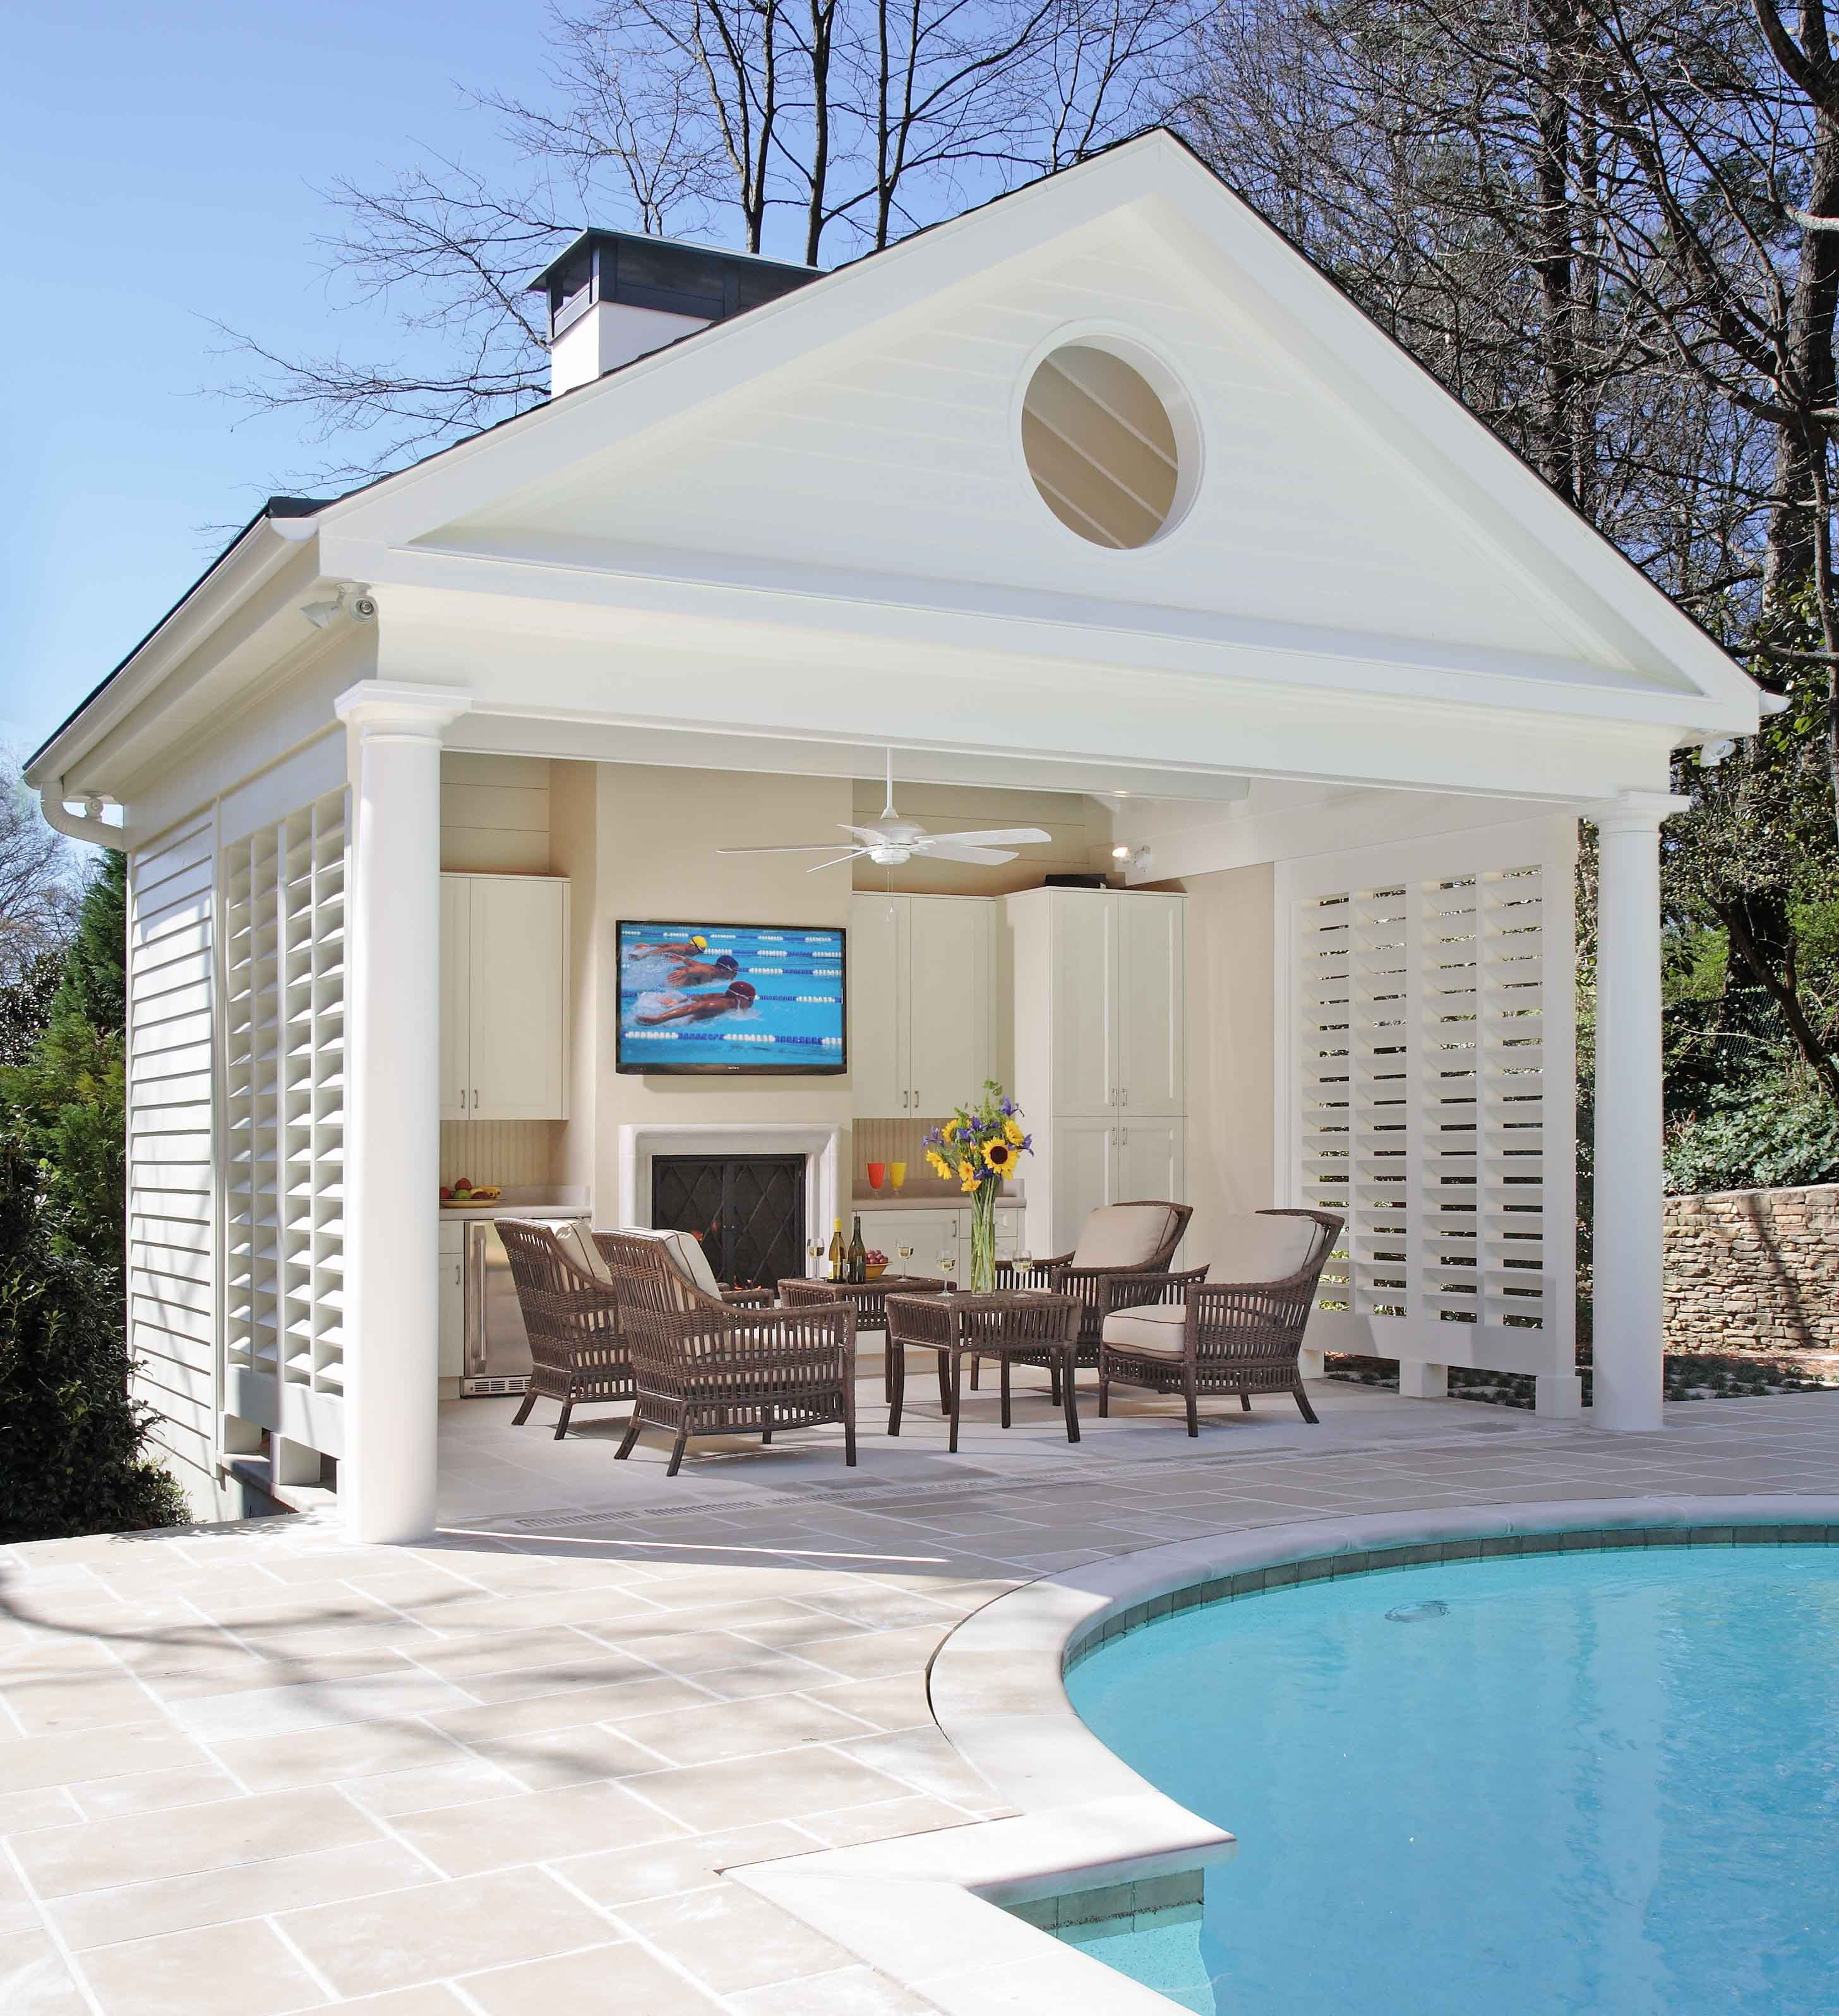 Pool House Building Plans: Buckhead Pool And Cabana With Fireplace, Bahamian Shutters